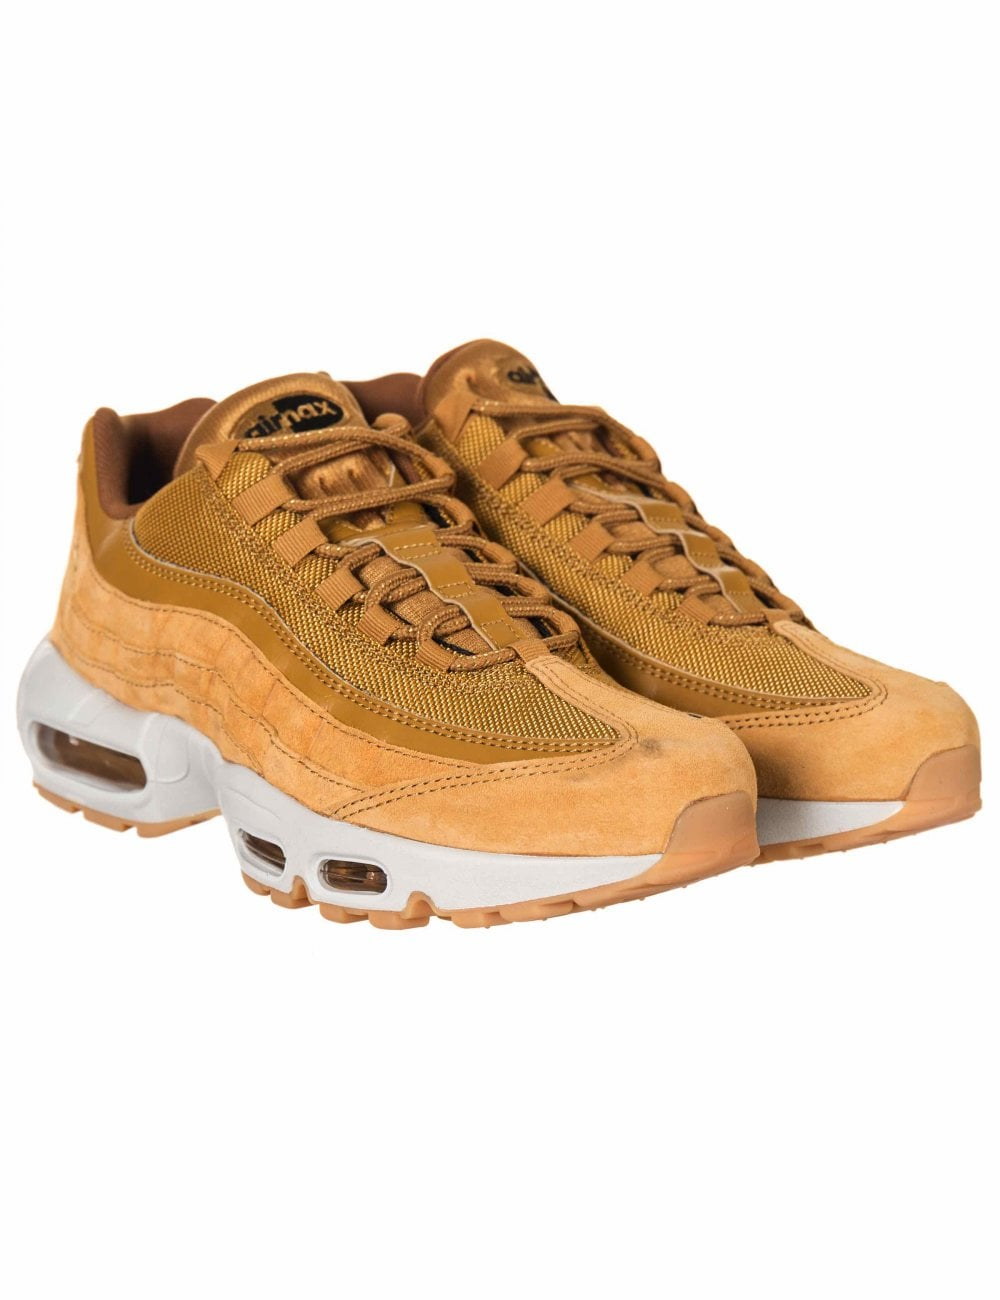 cheaper 762a5 c86e8 Air Max 95 SE Trainers - Wheat/Wheat